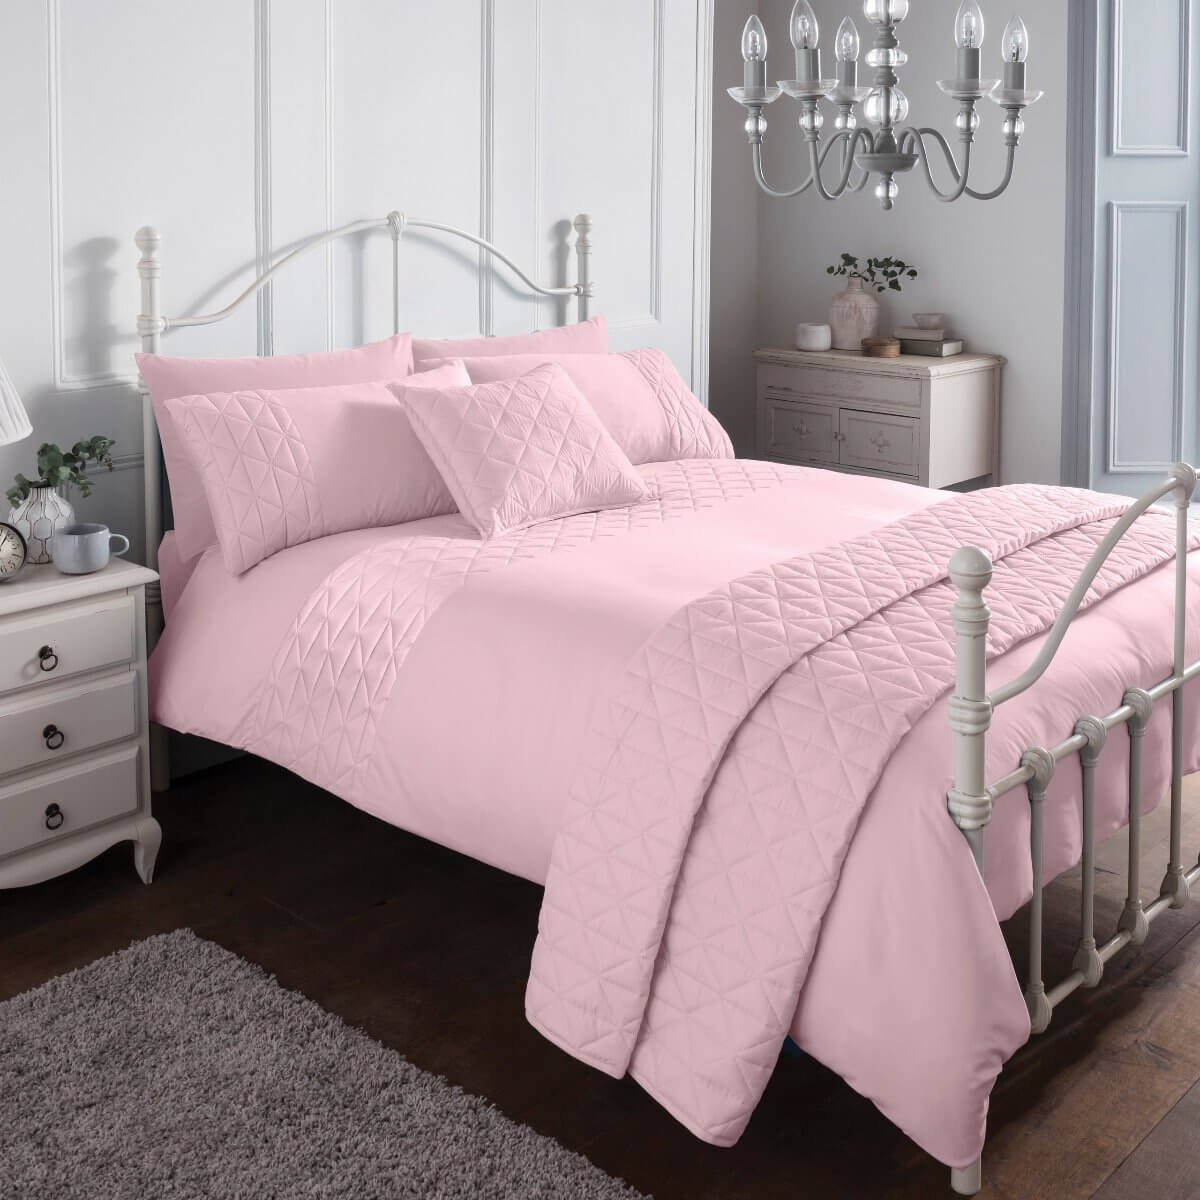 Pinsonic Pink Bedding Set